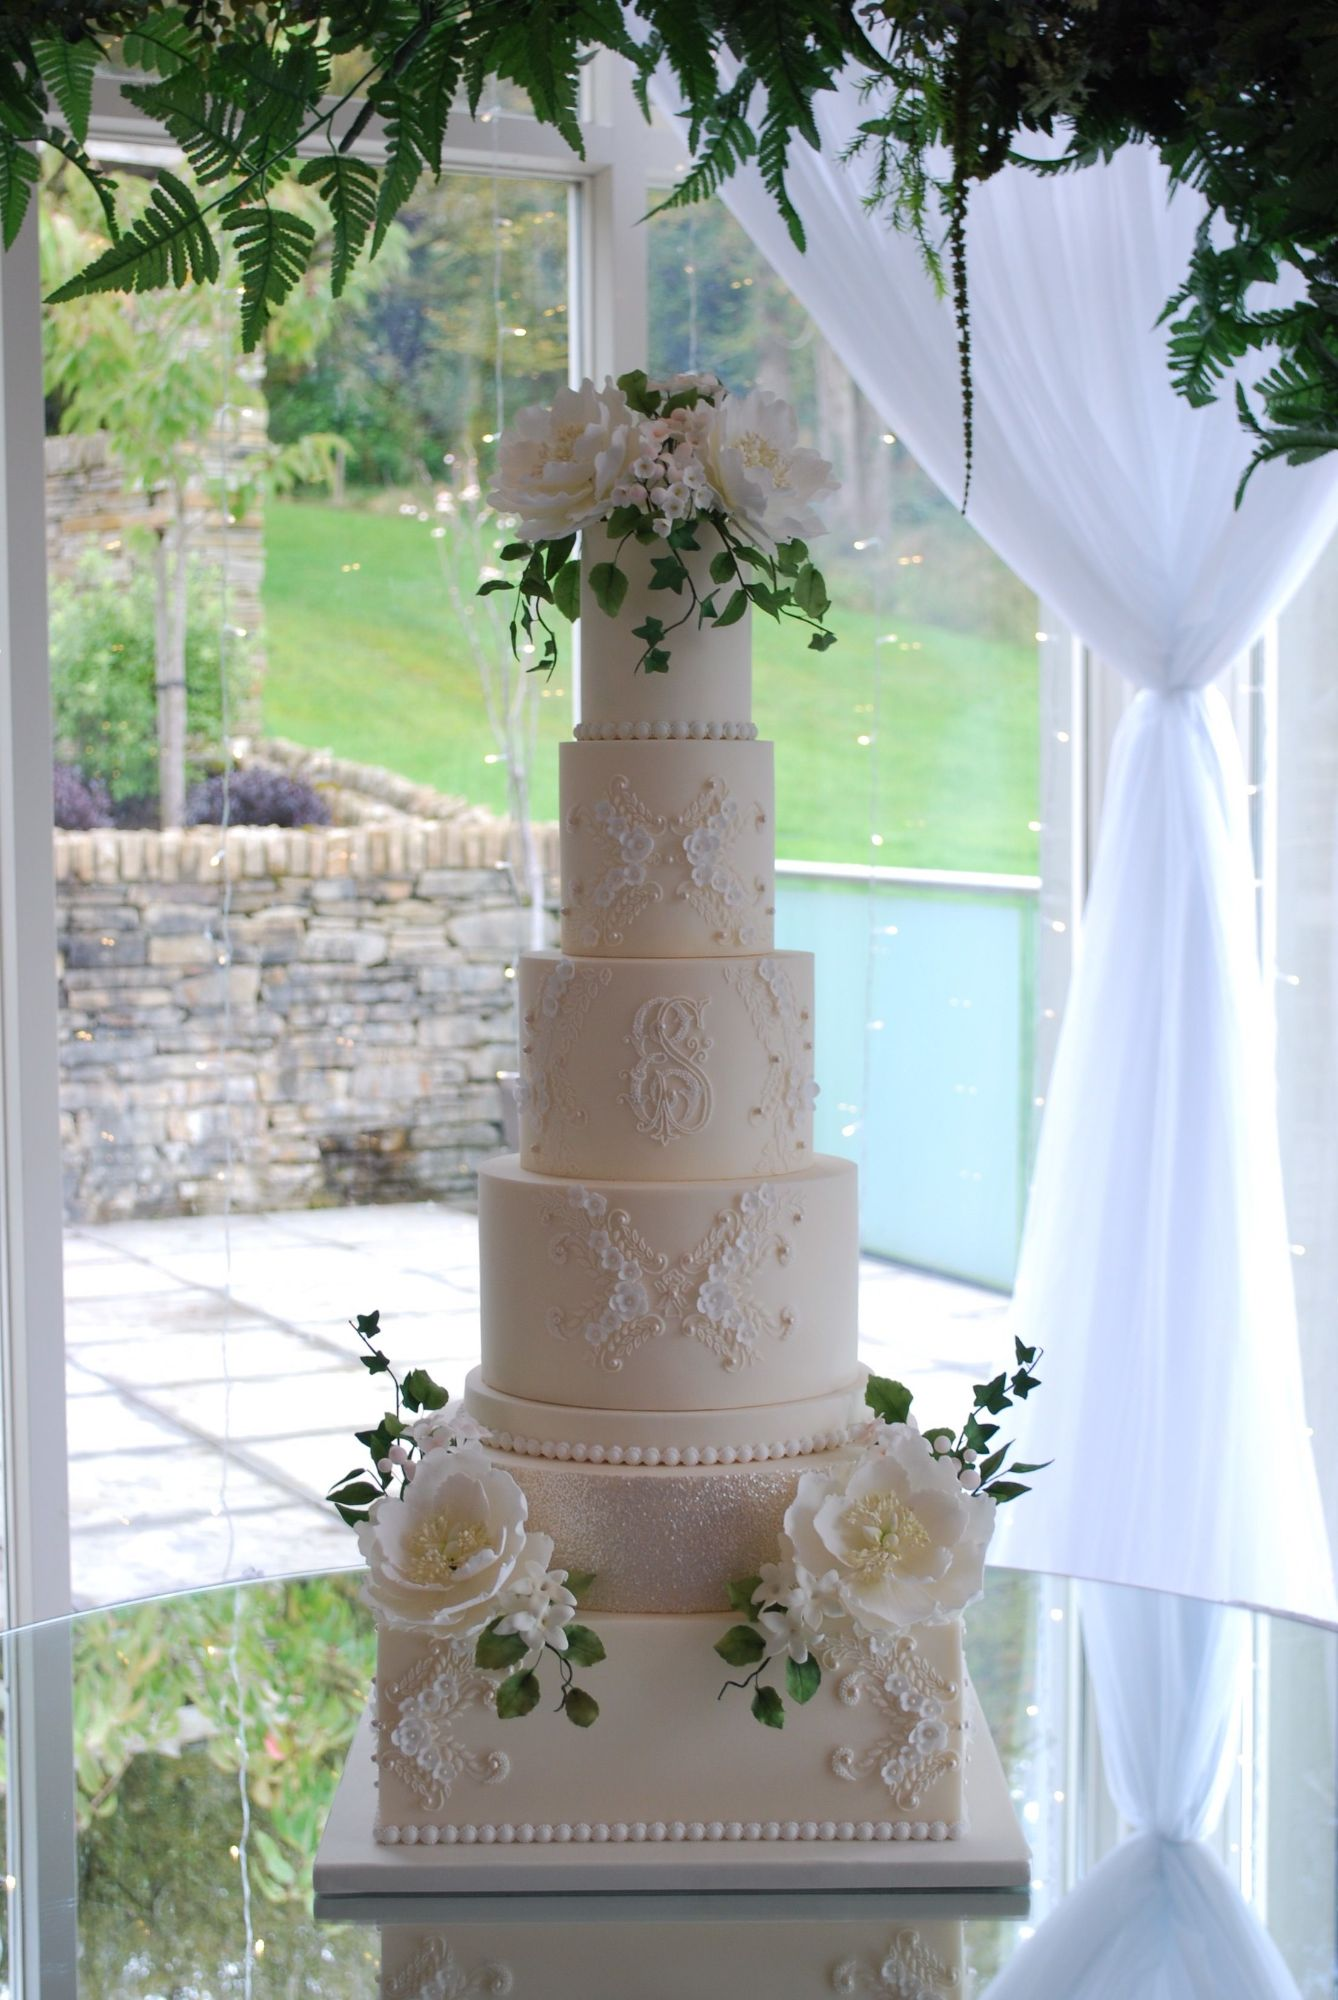 Showstopper Wedding Cakes Emma Stewart.jpeg